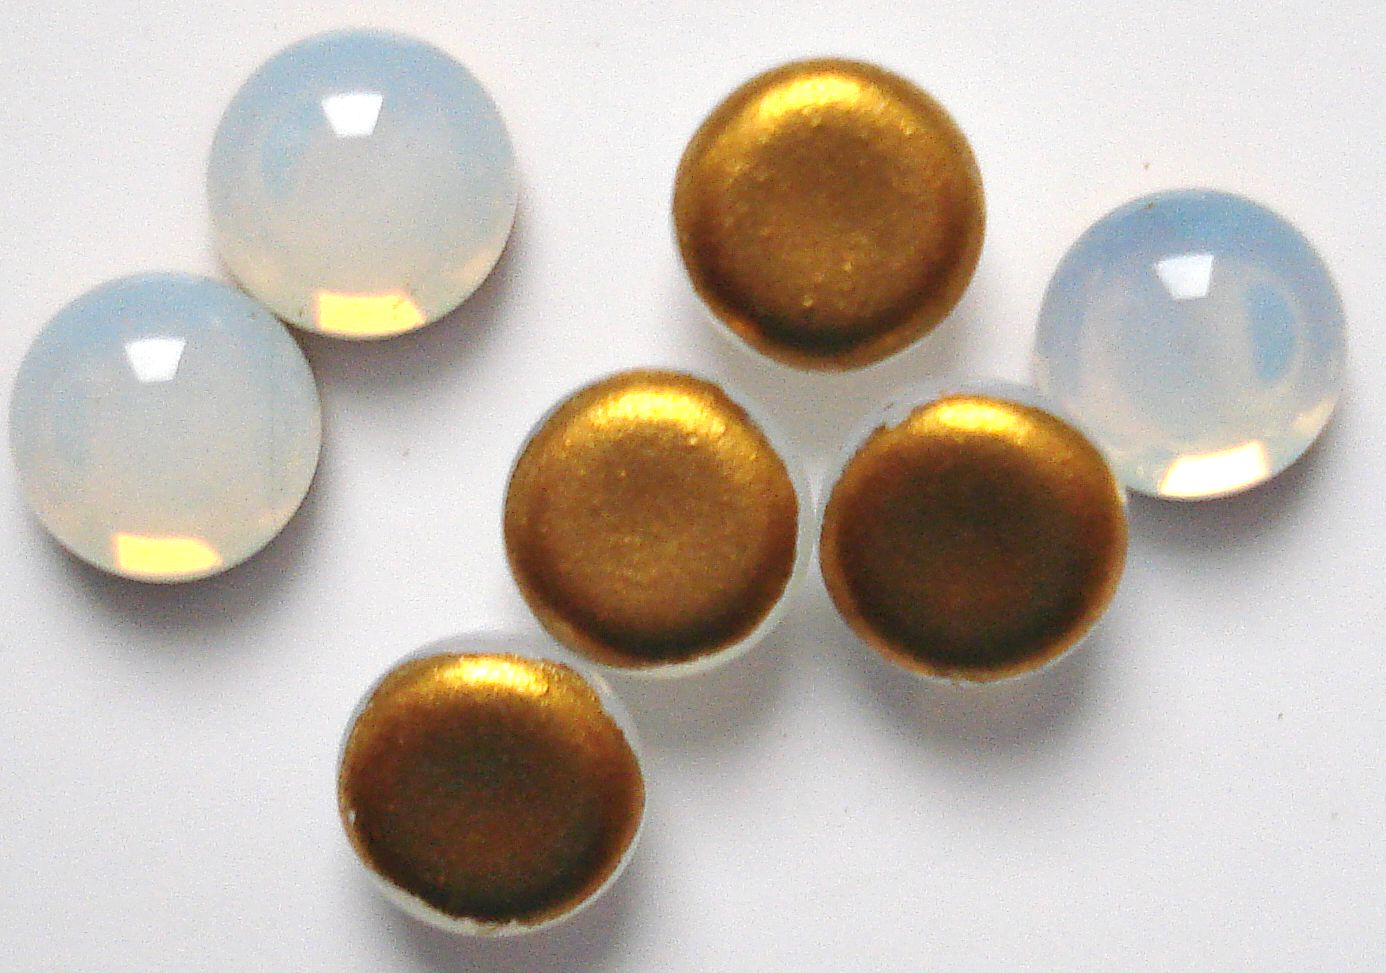 5MM (2194) ROUND GLASS WHITE OPAL CABOCHONS